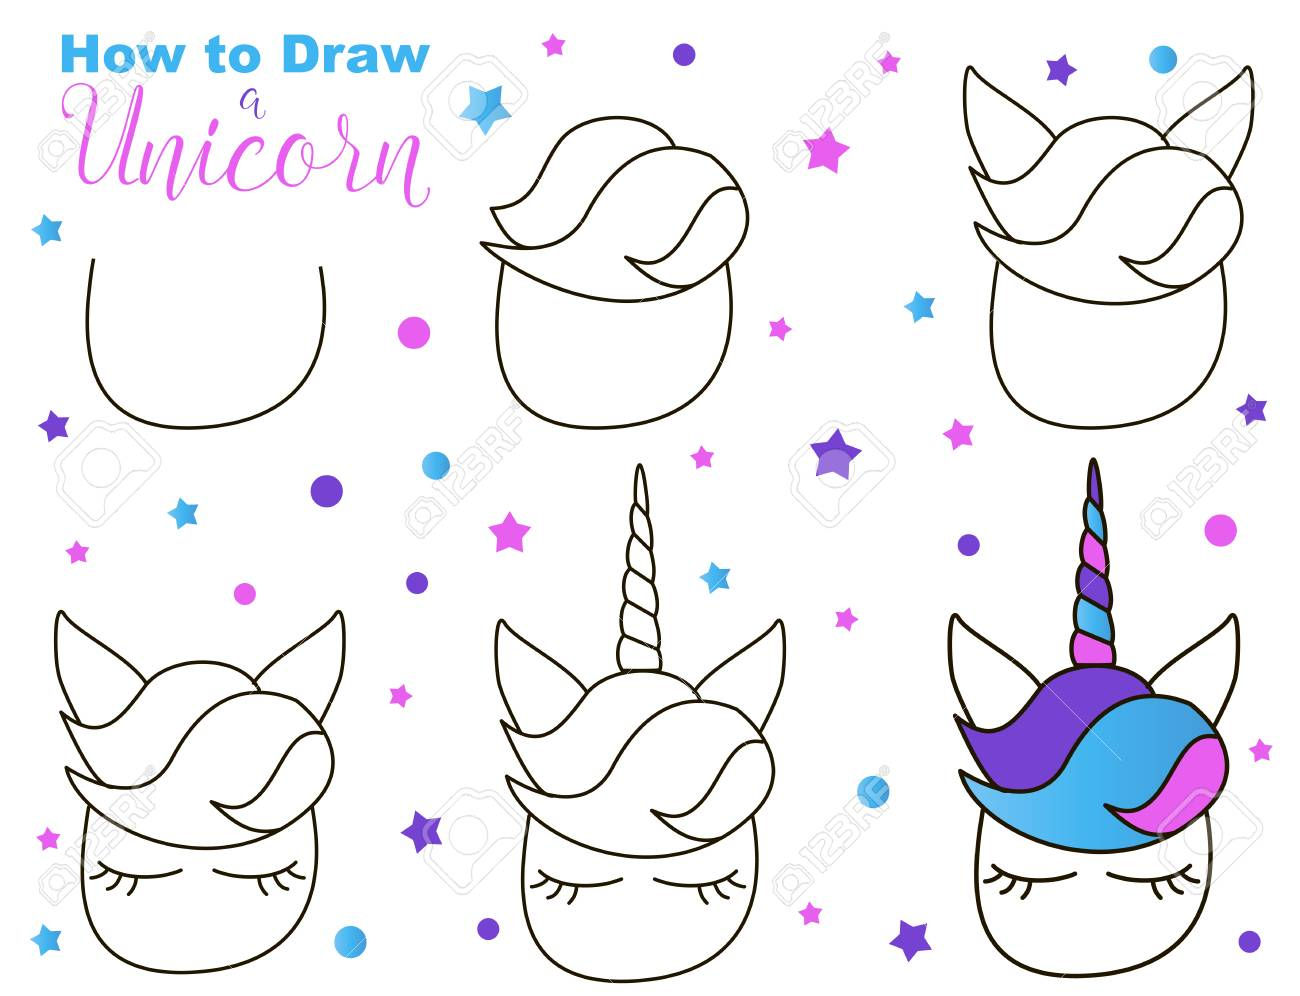 How To Draw Cute Unicorn Easy Steps For Children Activity Kawaii Royalty Free Cliparts Vectors And Stock Illustration Image 126146877